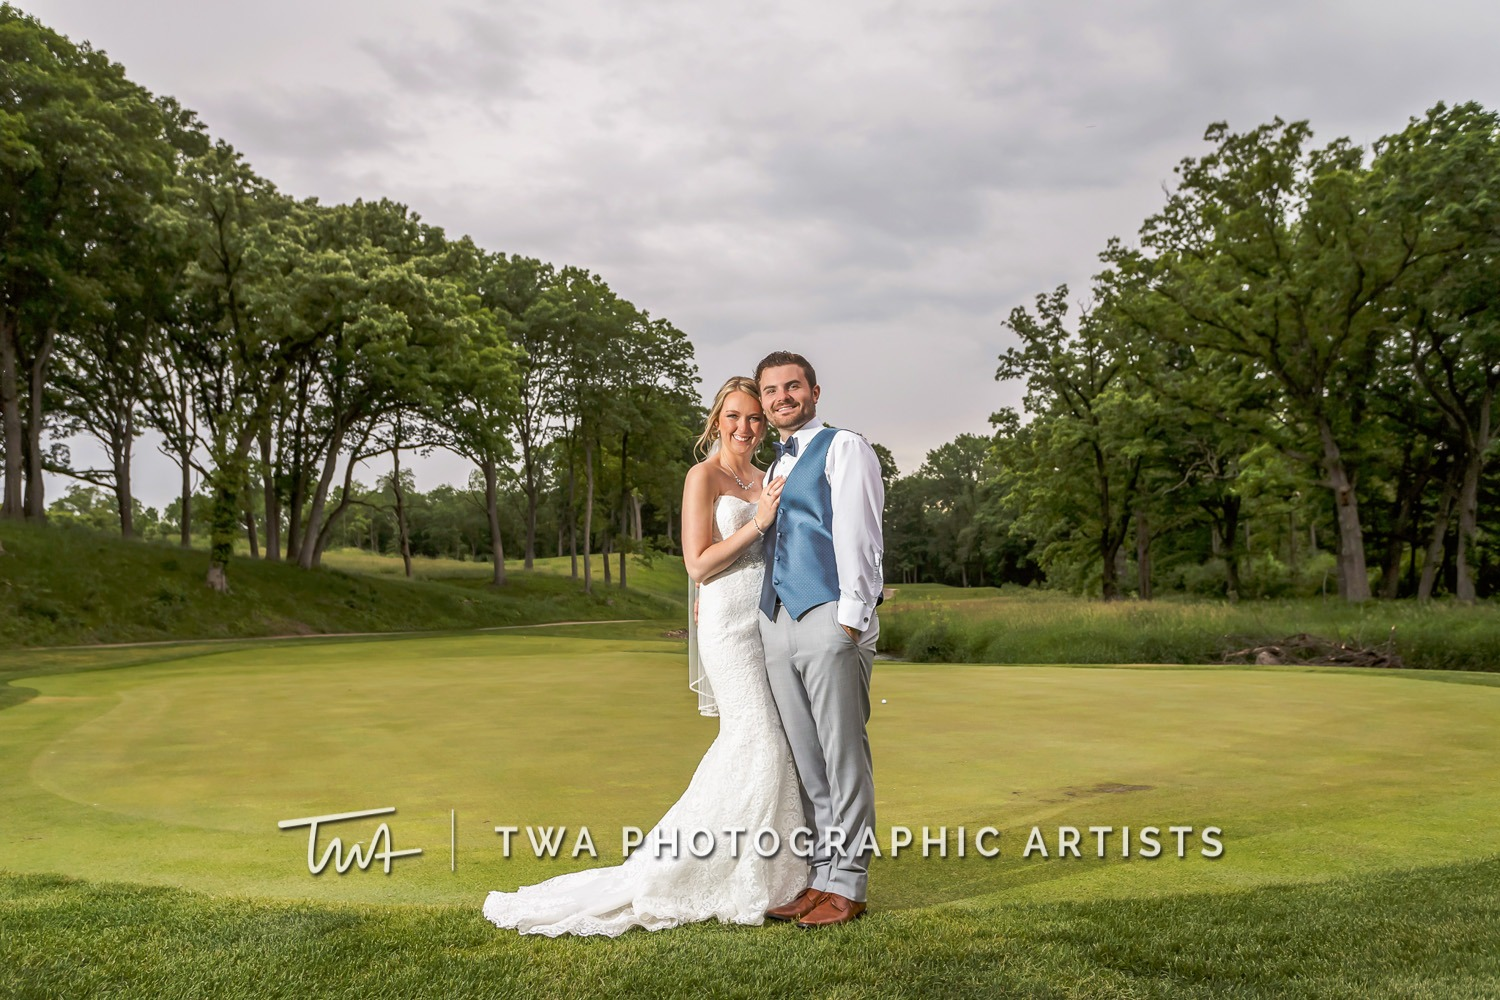 Chicago-Wedding-Photographer-TWA-Photographic-Artists-St.-Charles-CC_Wallschlaeger_Starks_MC_DR-084_0967